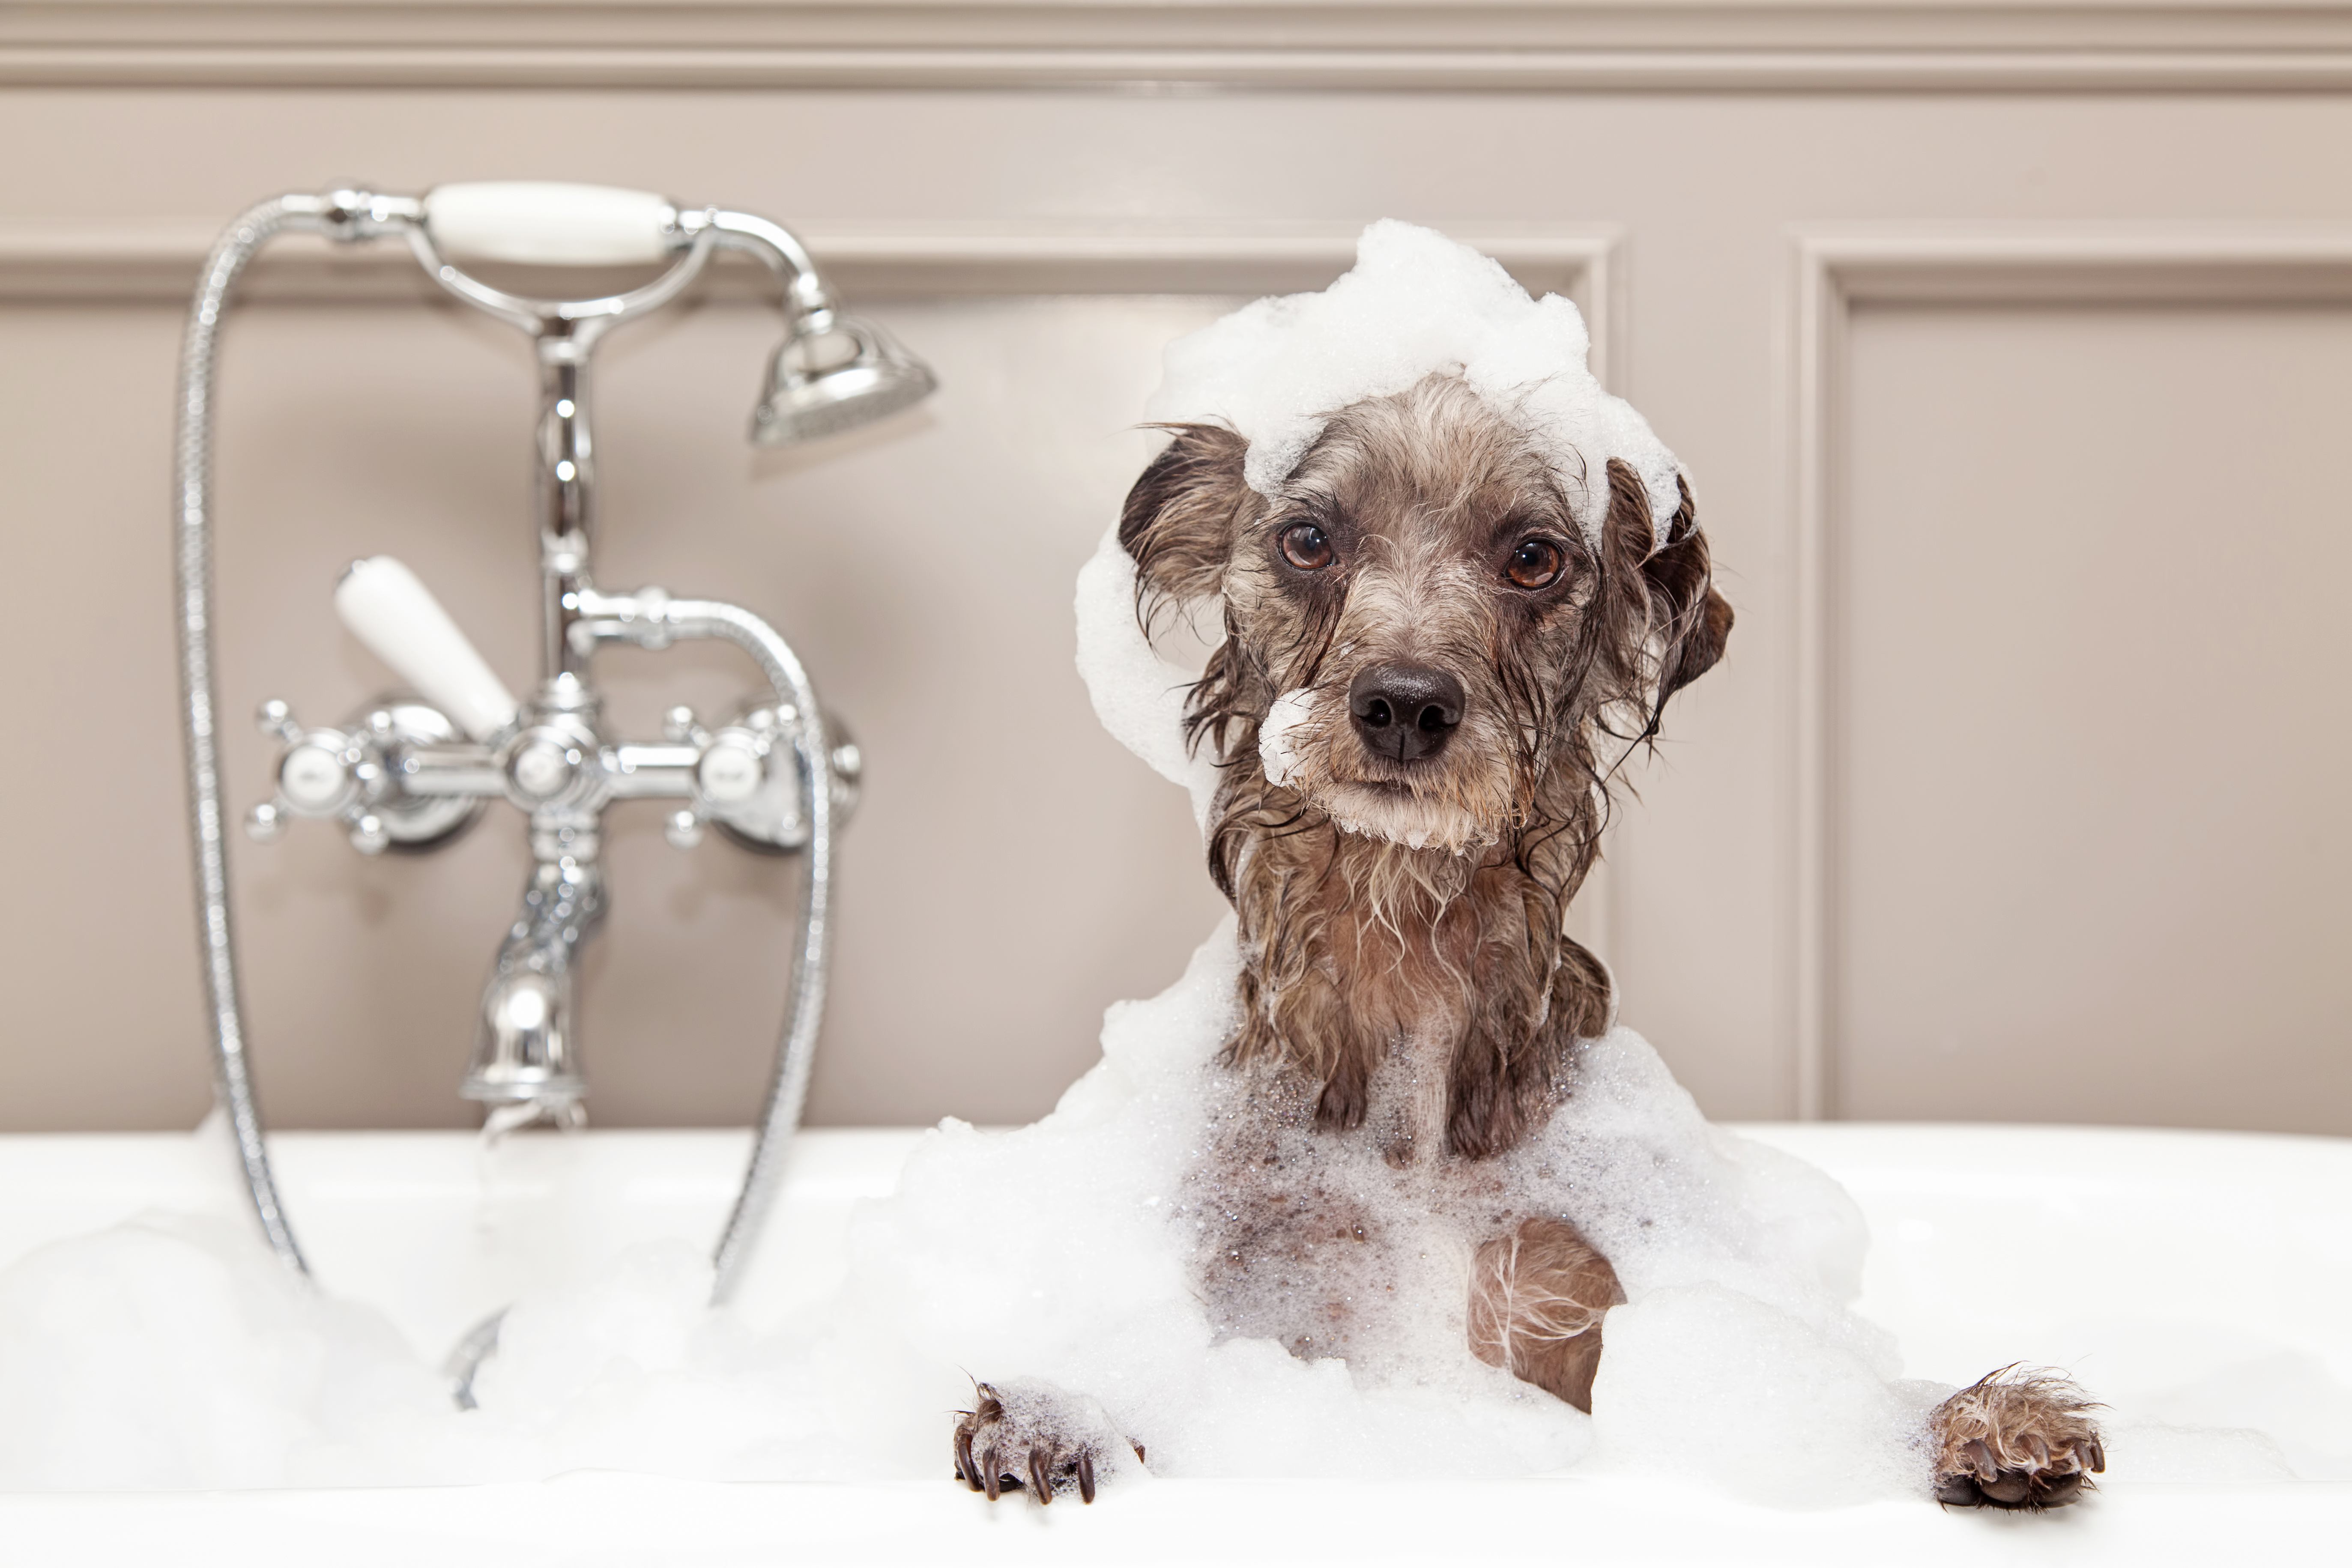 Self service dog washing funny dog taking bubble bath solutioingenieria Images